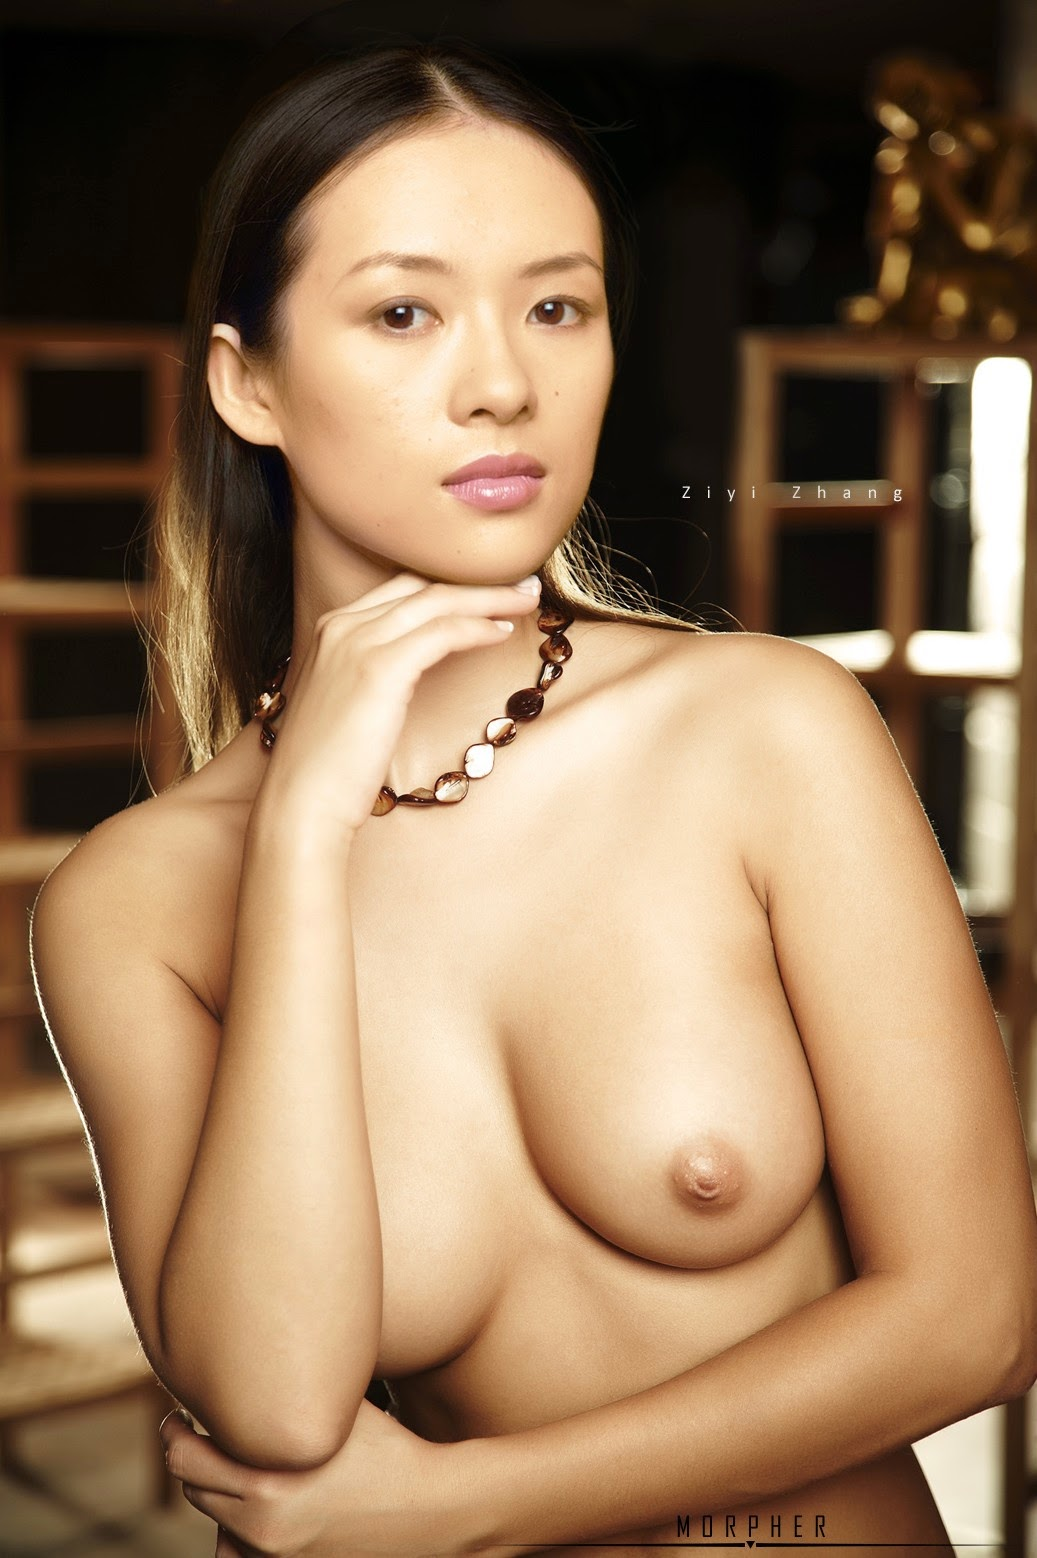 Angela Gregovic Nude chinese women actresses nude titas - other - porn photos